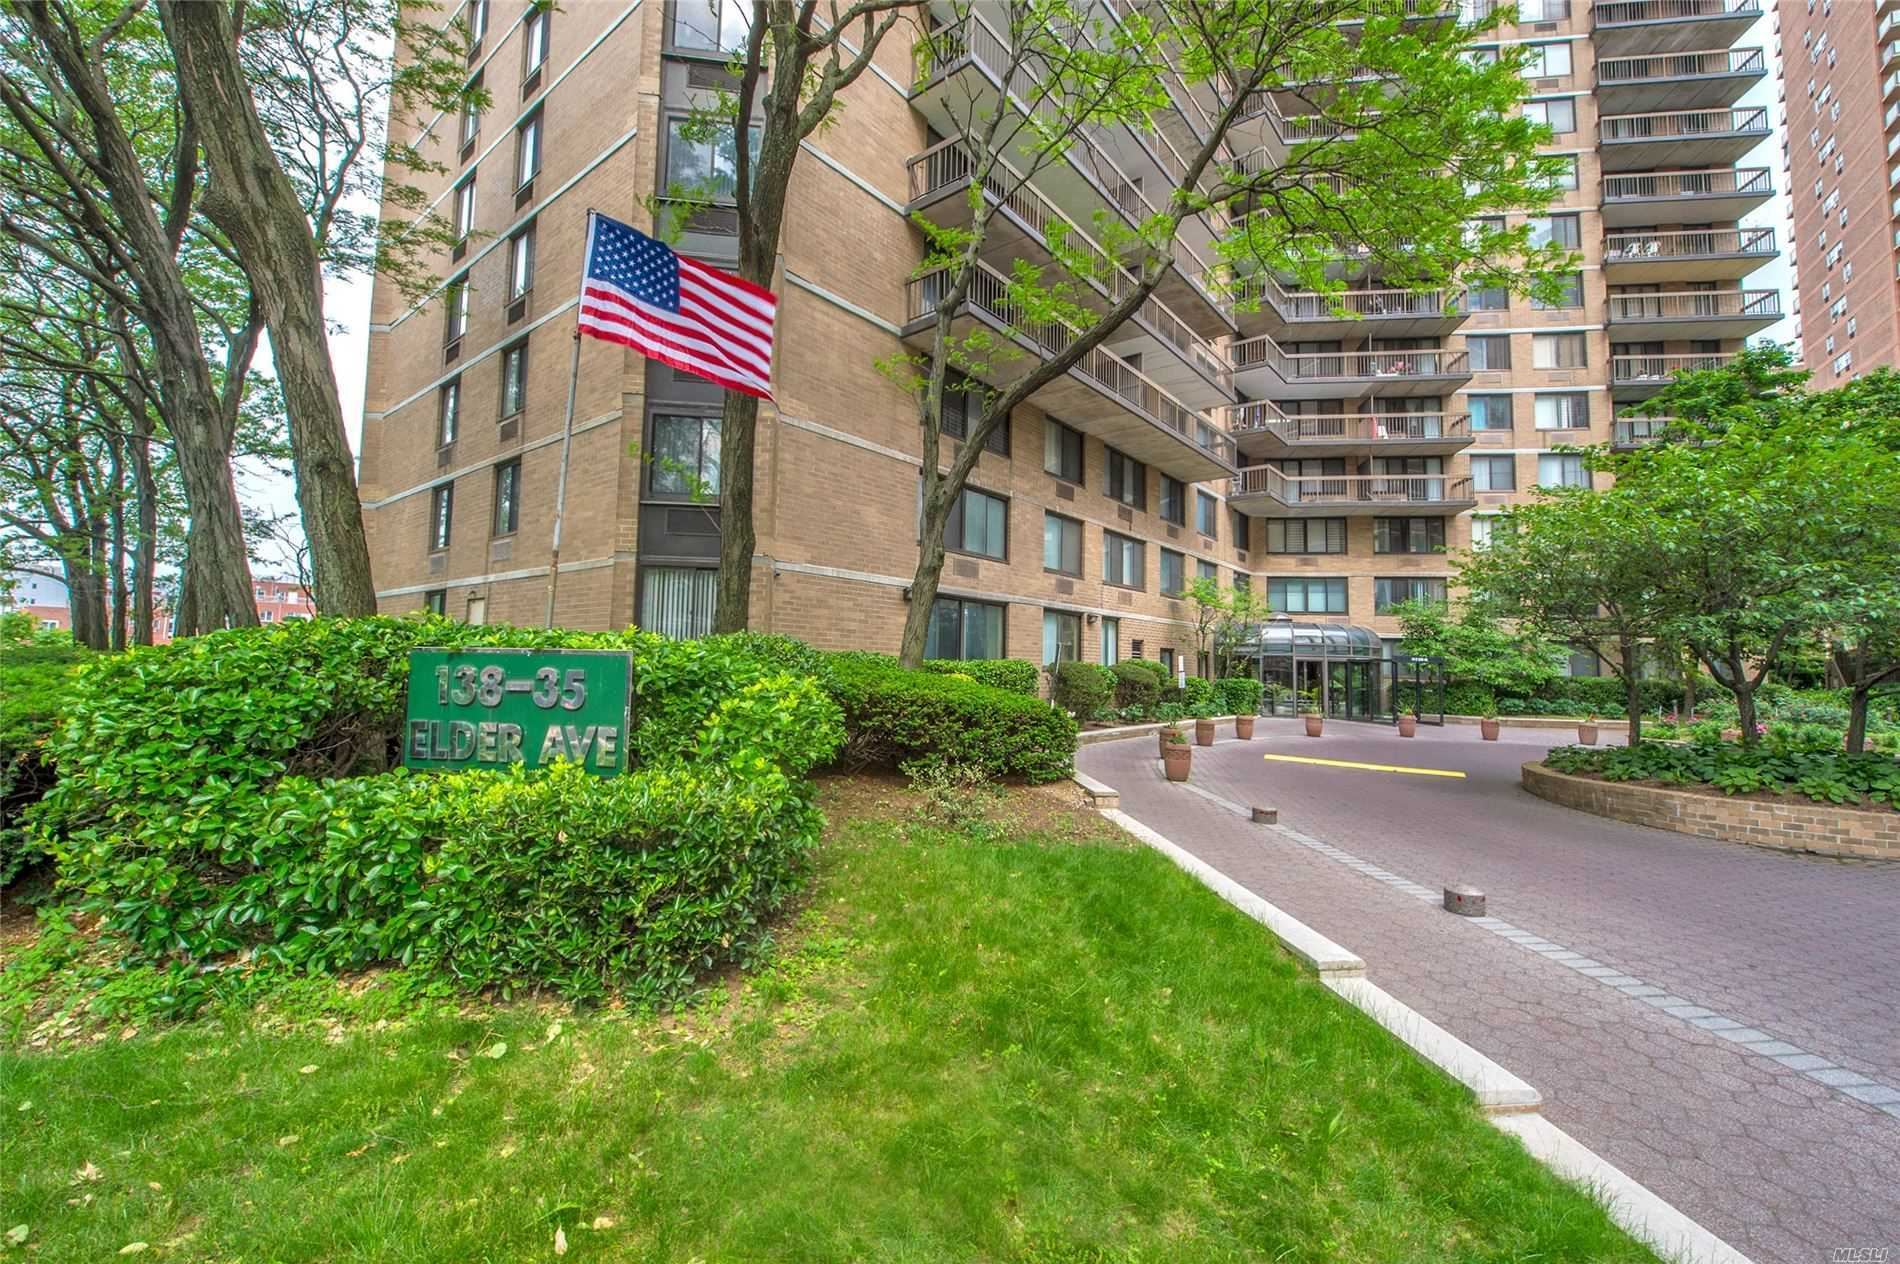 138-35 Elder Avenue #4J, Flushing, NY 11355 - MLS#: 3193764